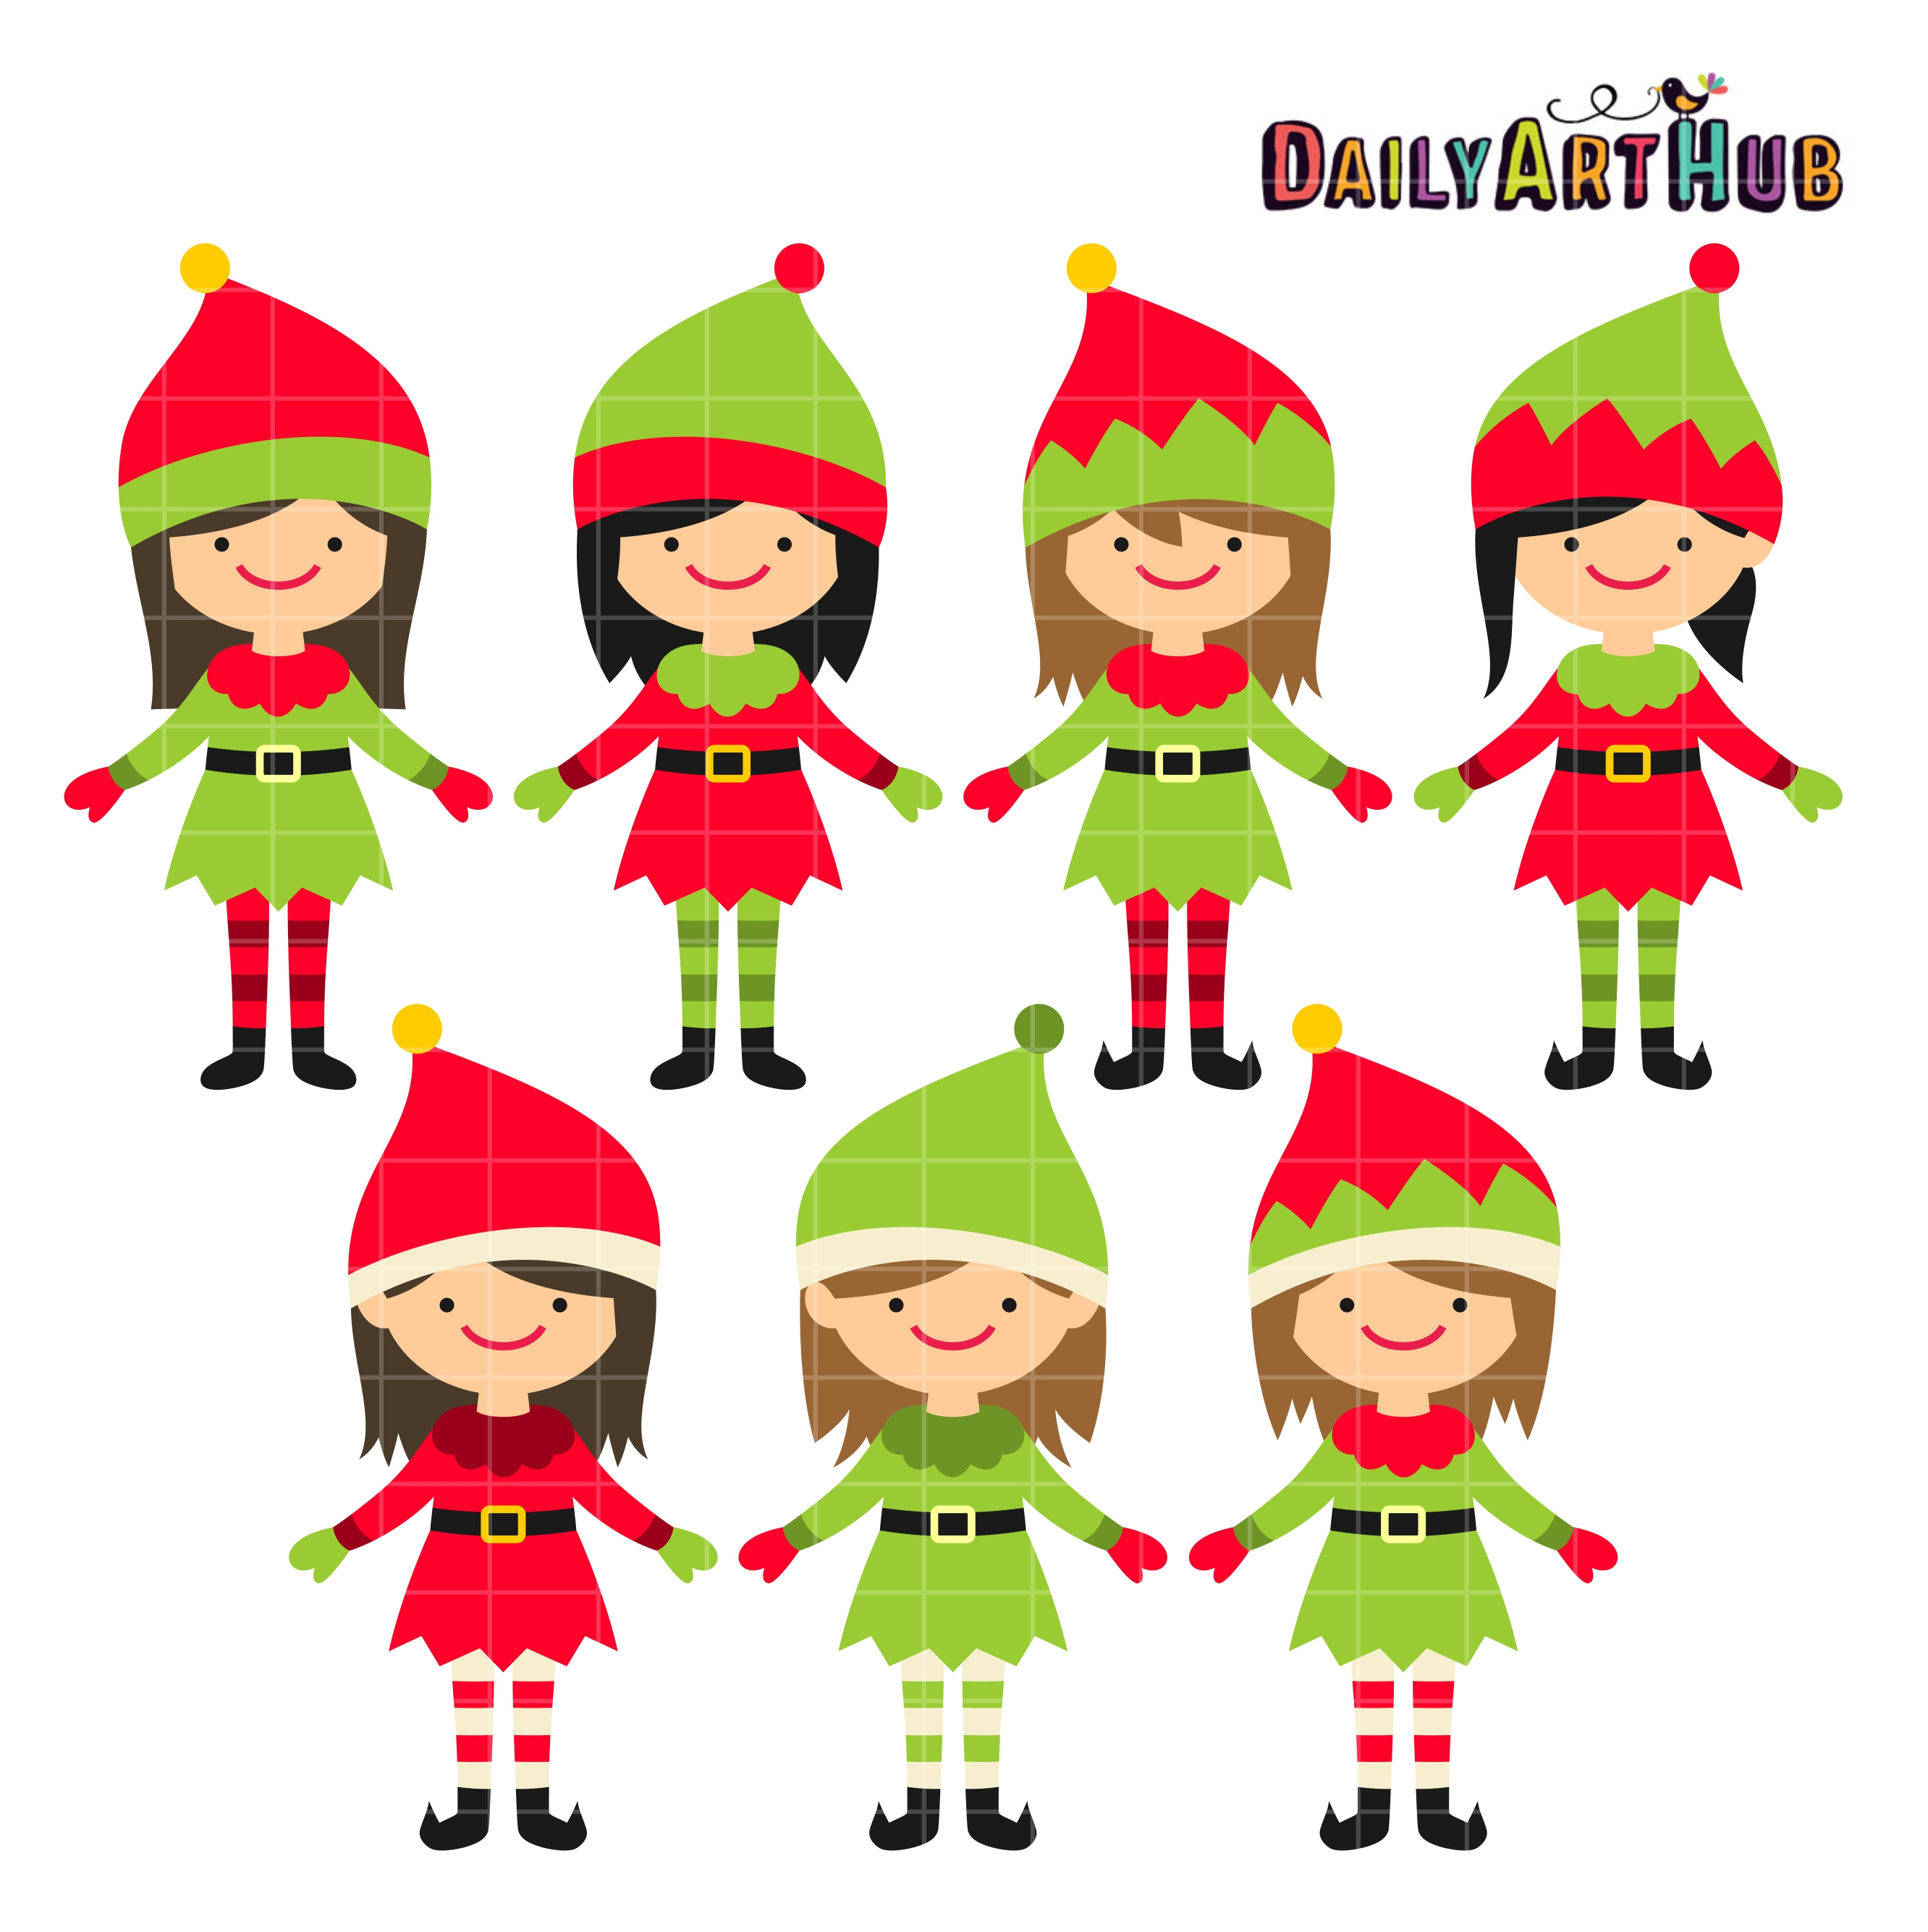 2664x2670 Christmas Cute Elves Clip Art Set Daily Art Hub